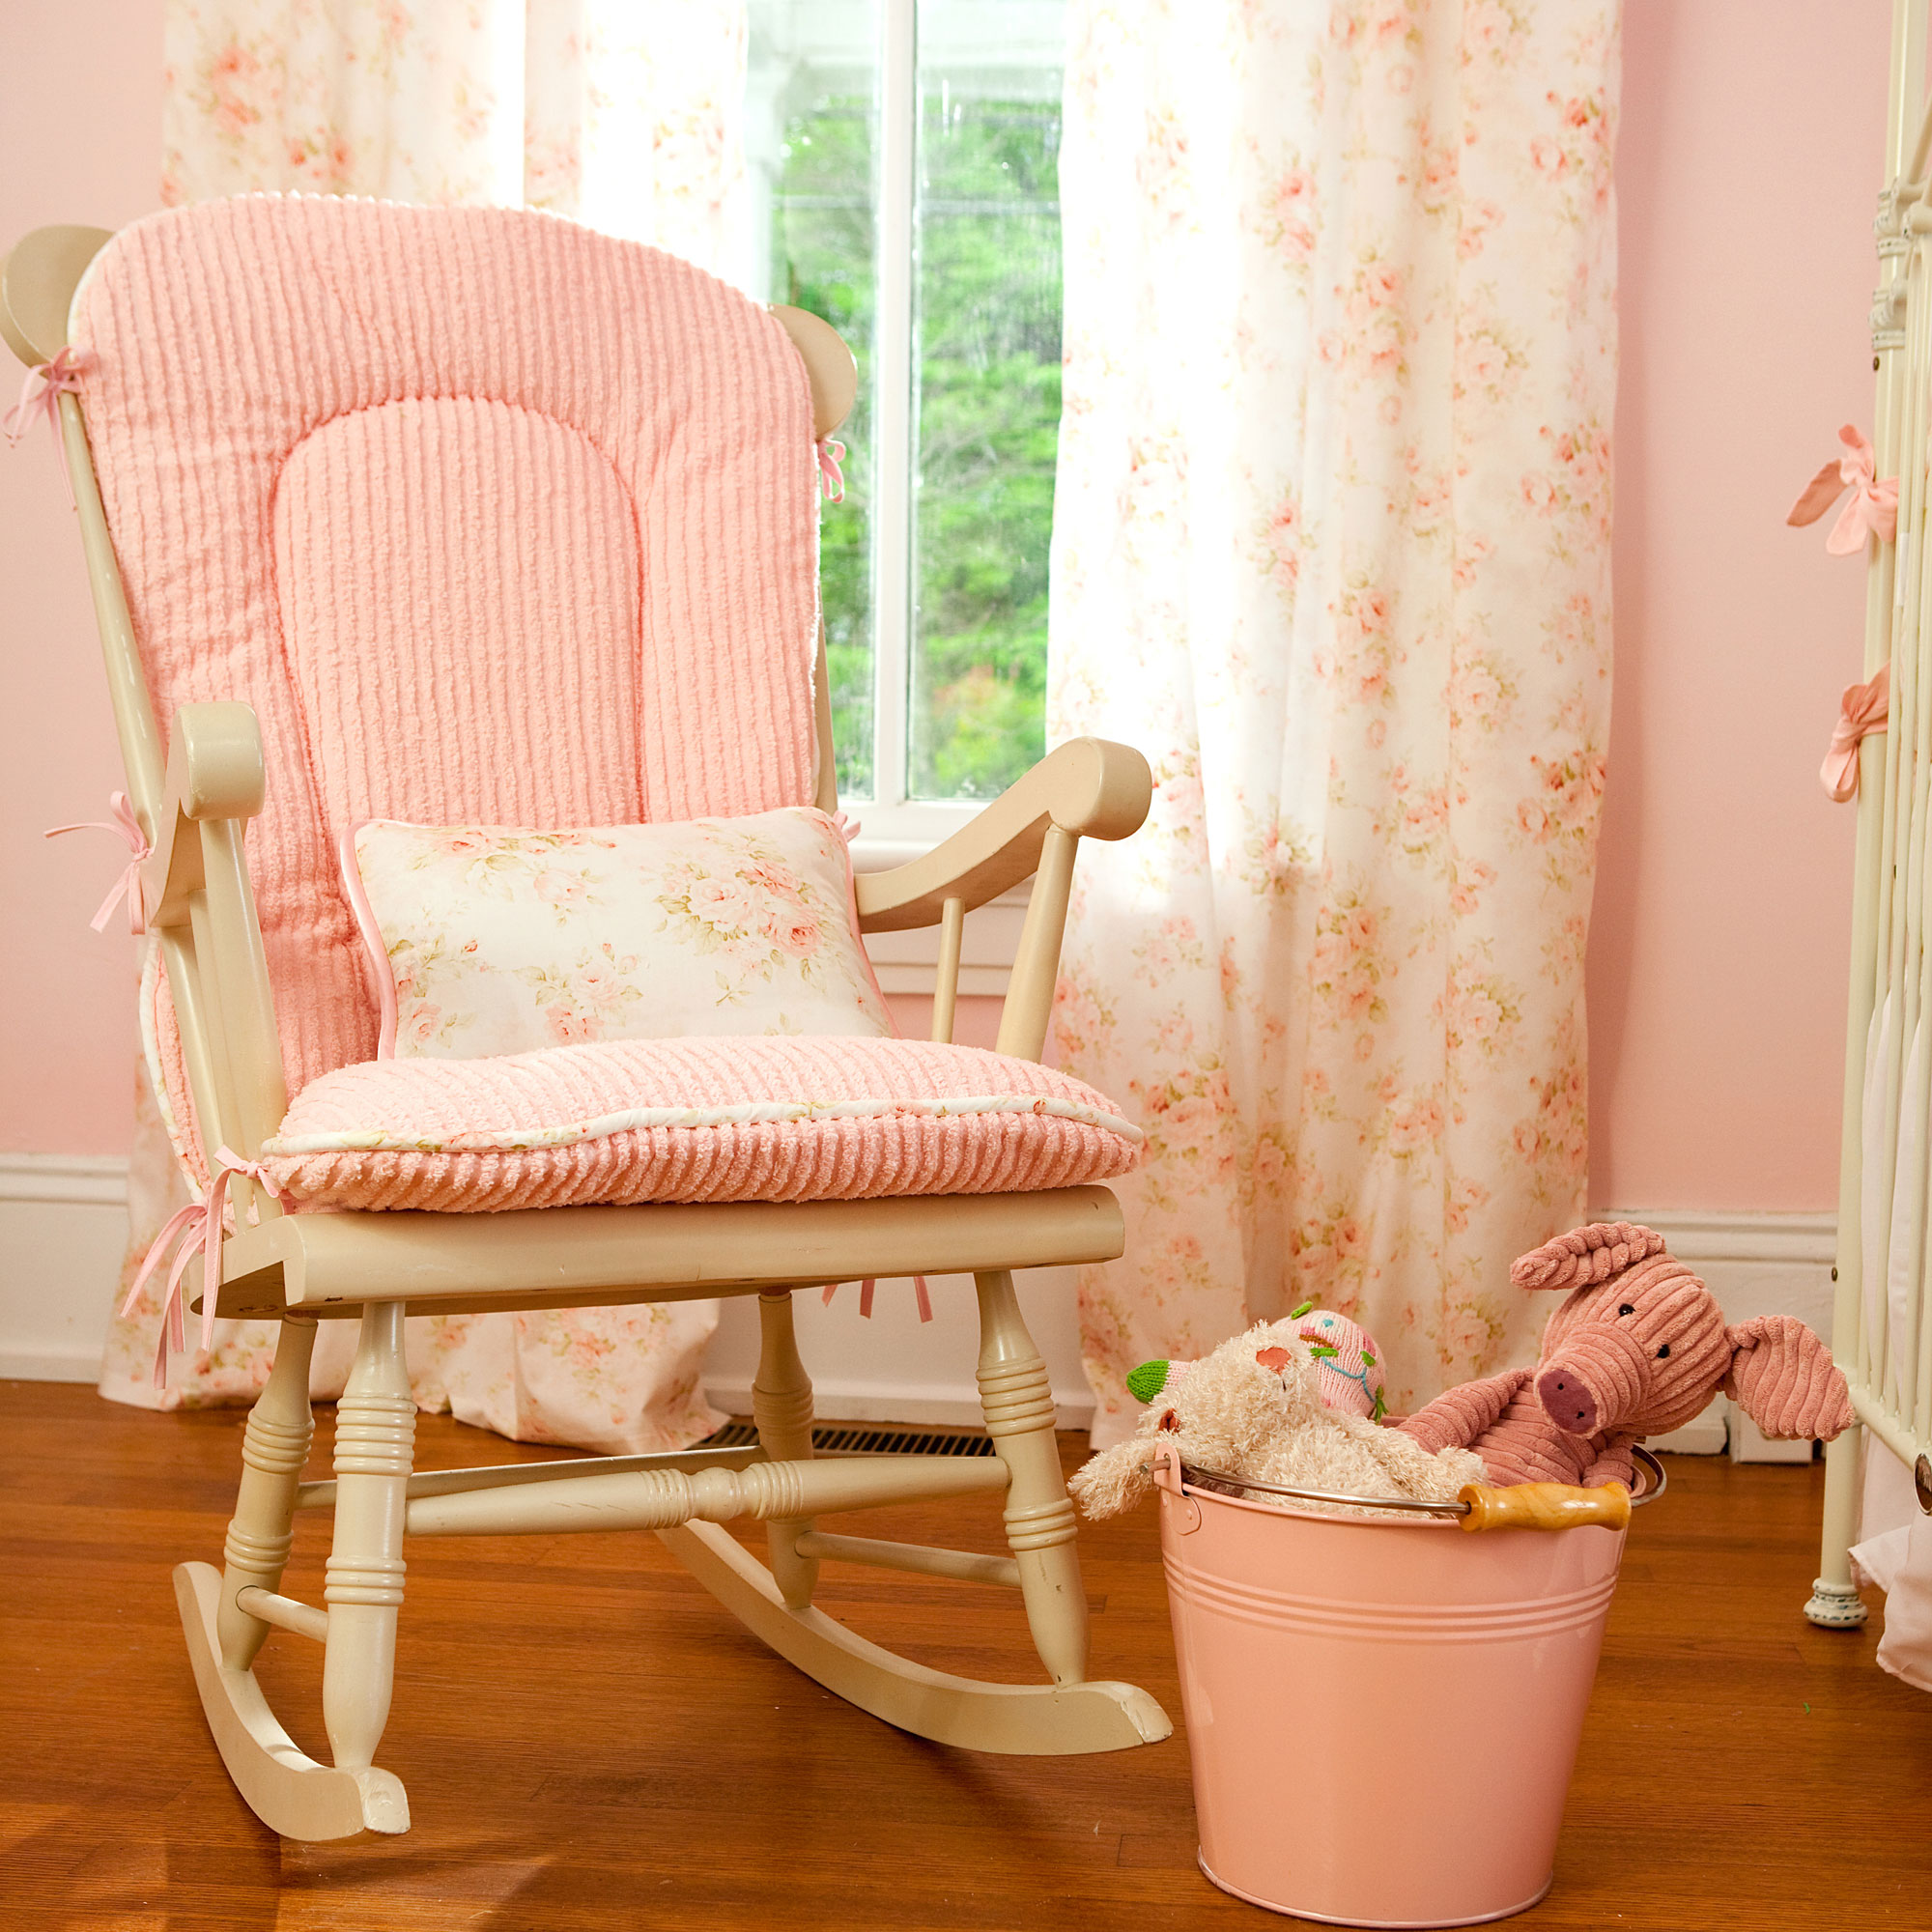 How To Decorate Babies And Moms Heaven Interior Design Paradise